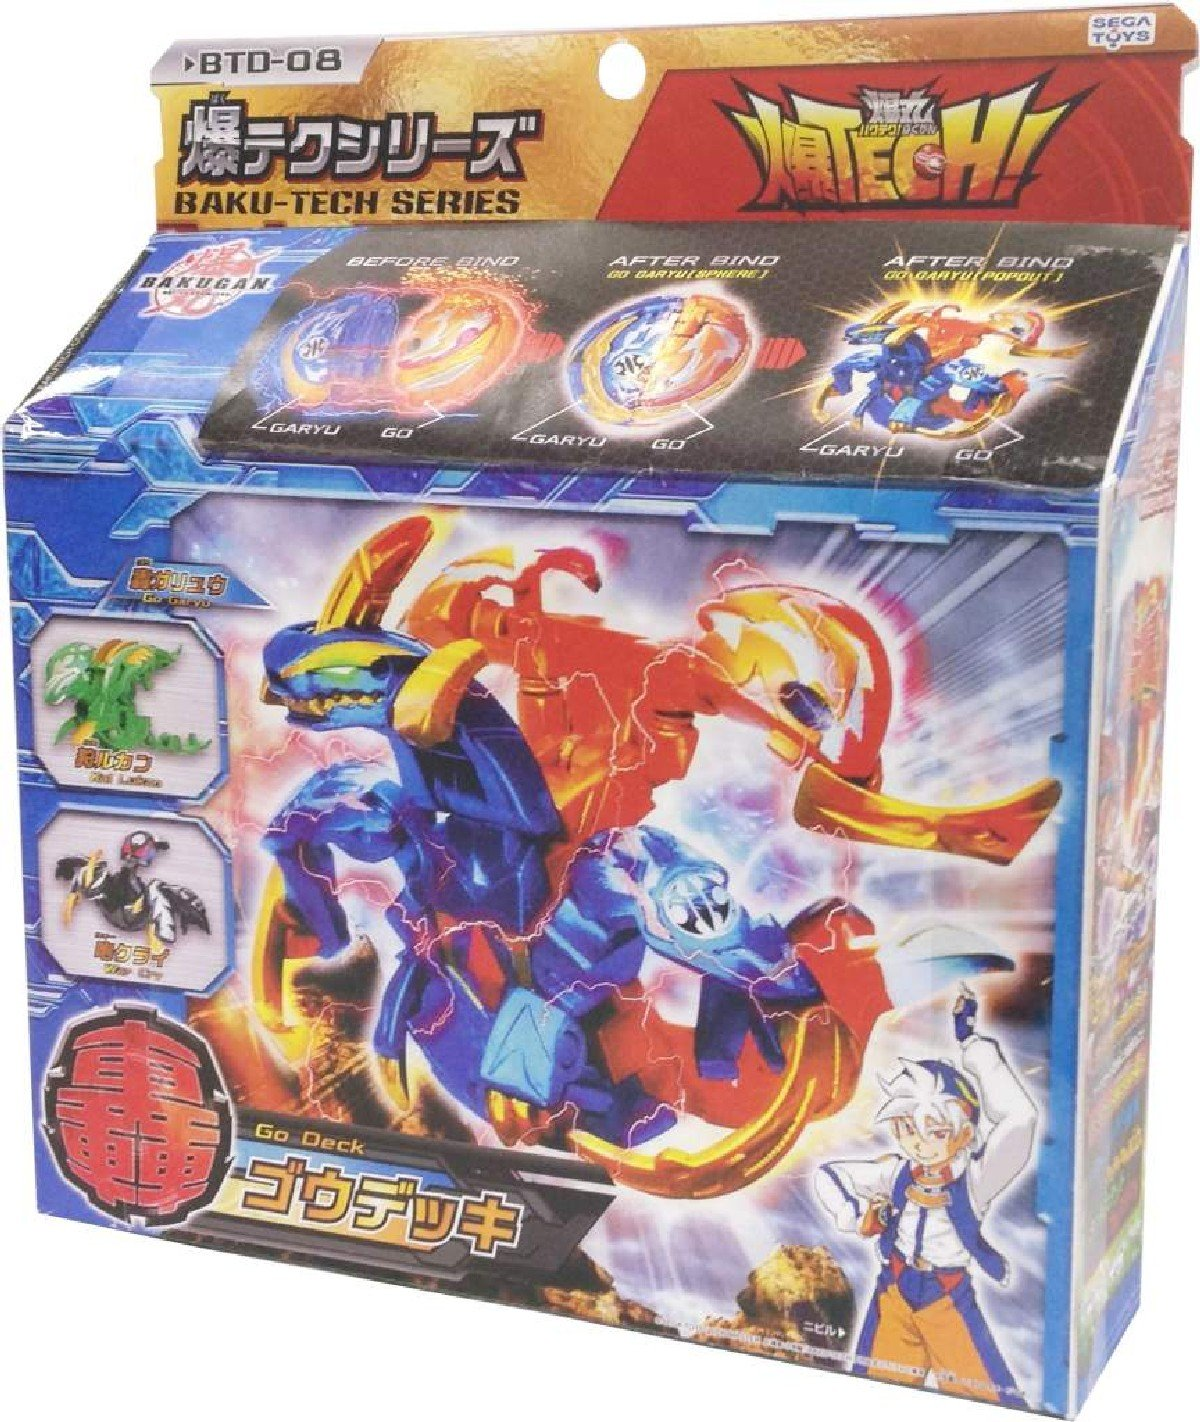 1 X Bakugan BTD-08 Baku Tech Gou Deck by Sega